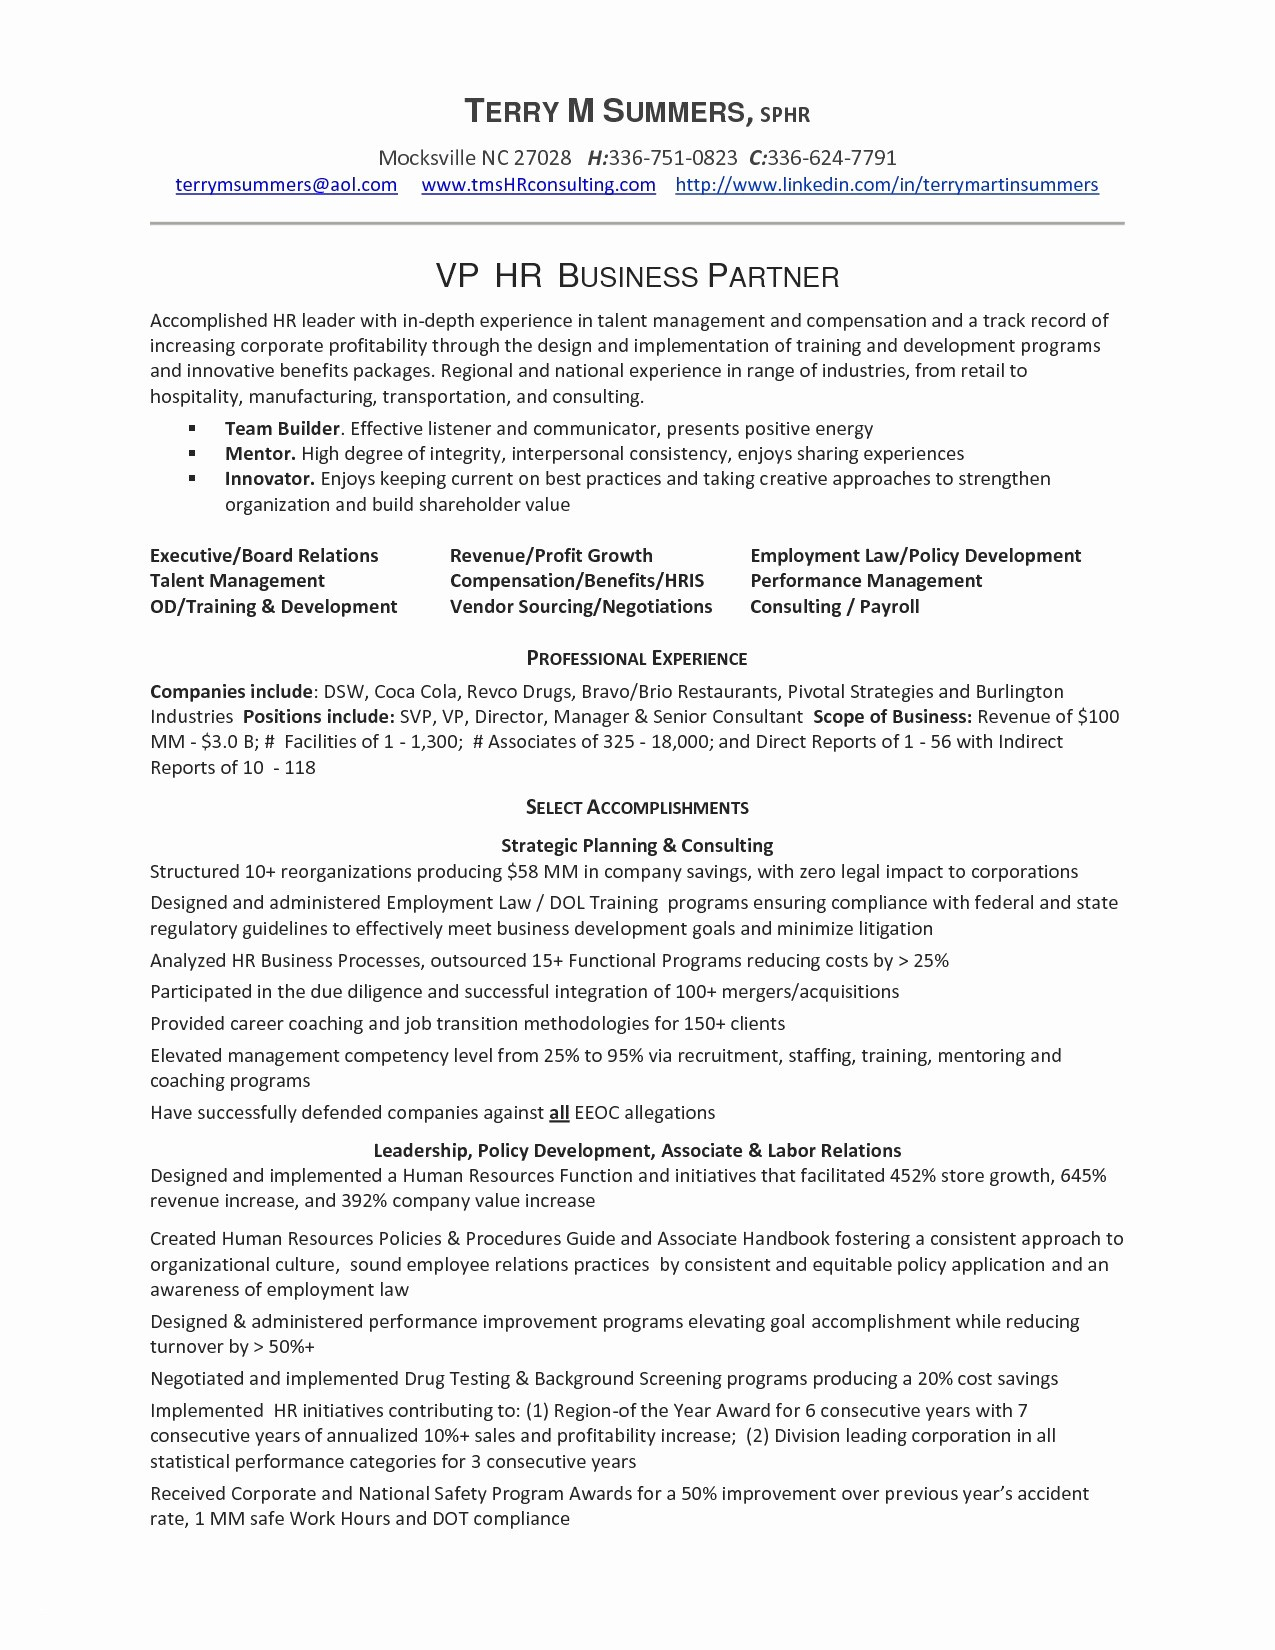 Finance Manager Resume Sample - Finance Manager Resume Fresh 20 Resume for Internship Sample